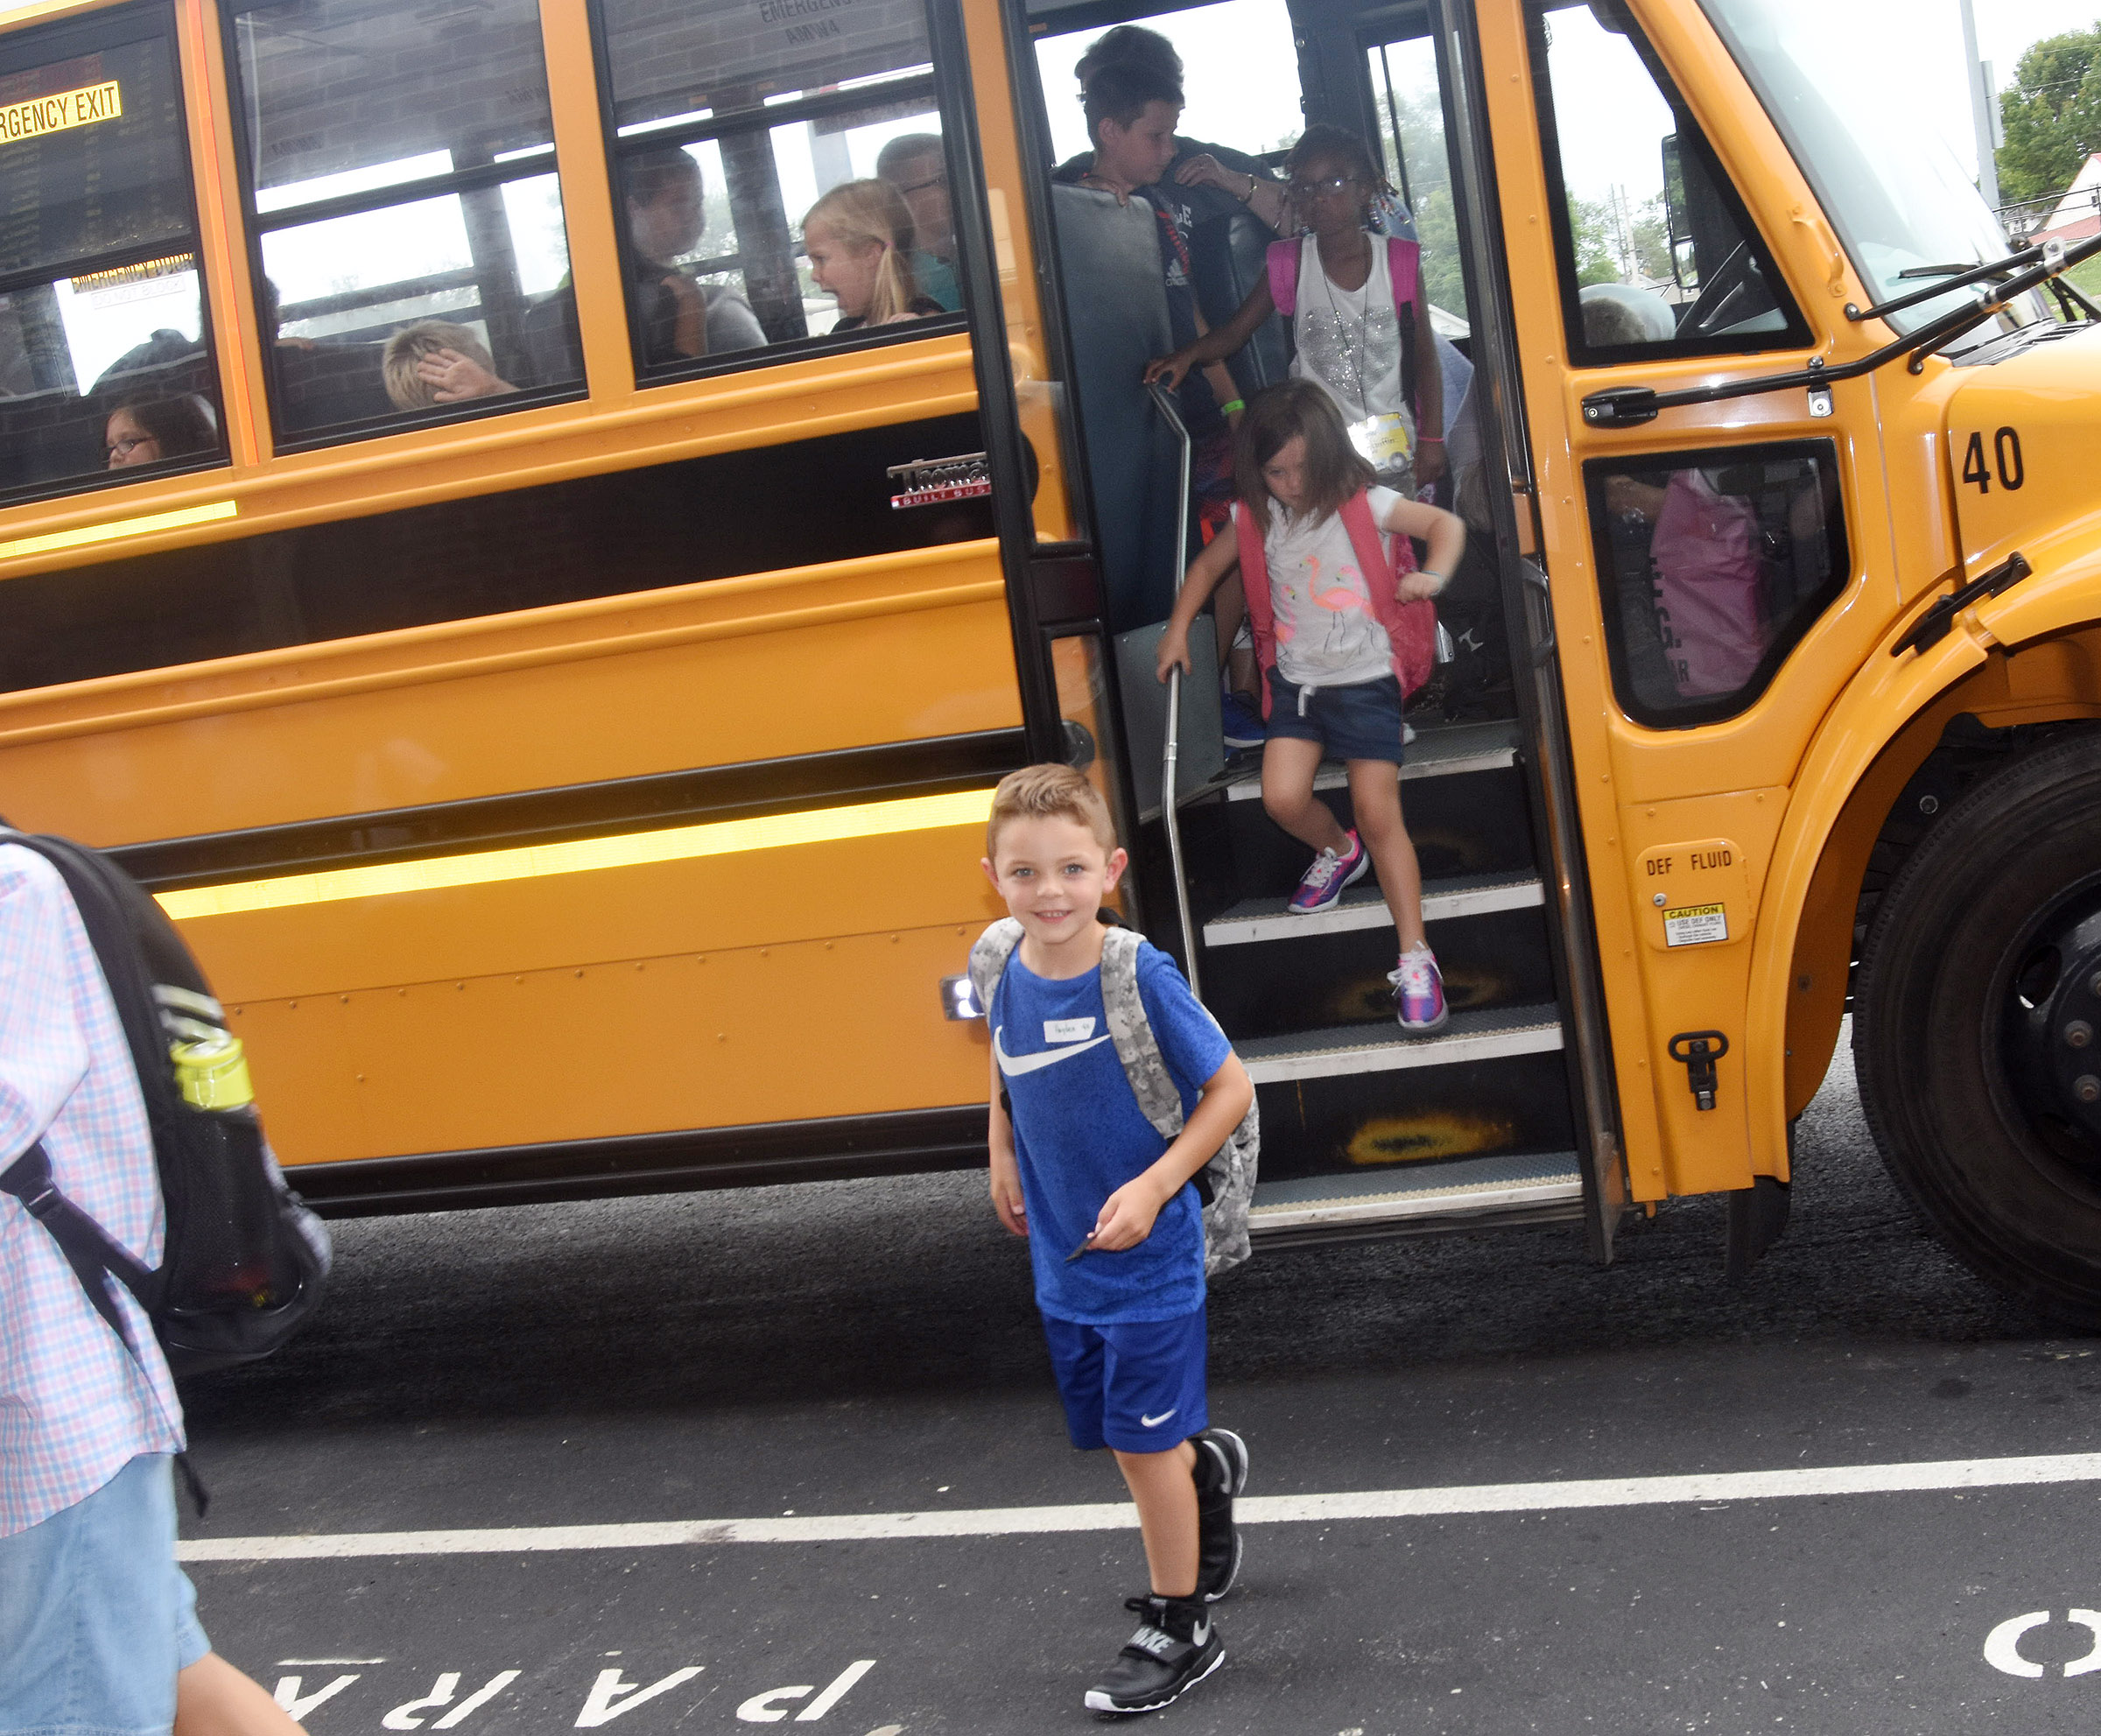 Campbellsville Elementary School first-grader Hayden Goff smiles as he gets off the bus at the end of the day.